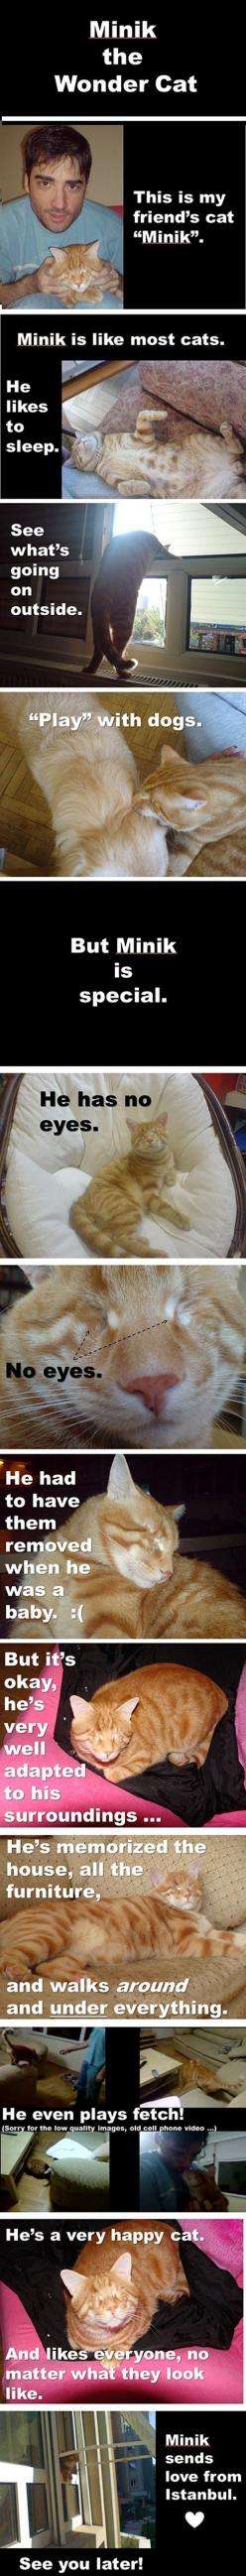 Aww he's so cute!!!!: Cats, Sweet, Pet, Wondercat, Wonder Cat, Kitty, Cat Lady, Eye, Animal